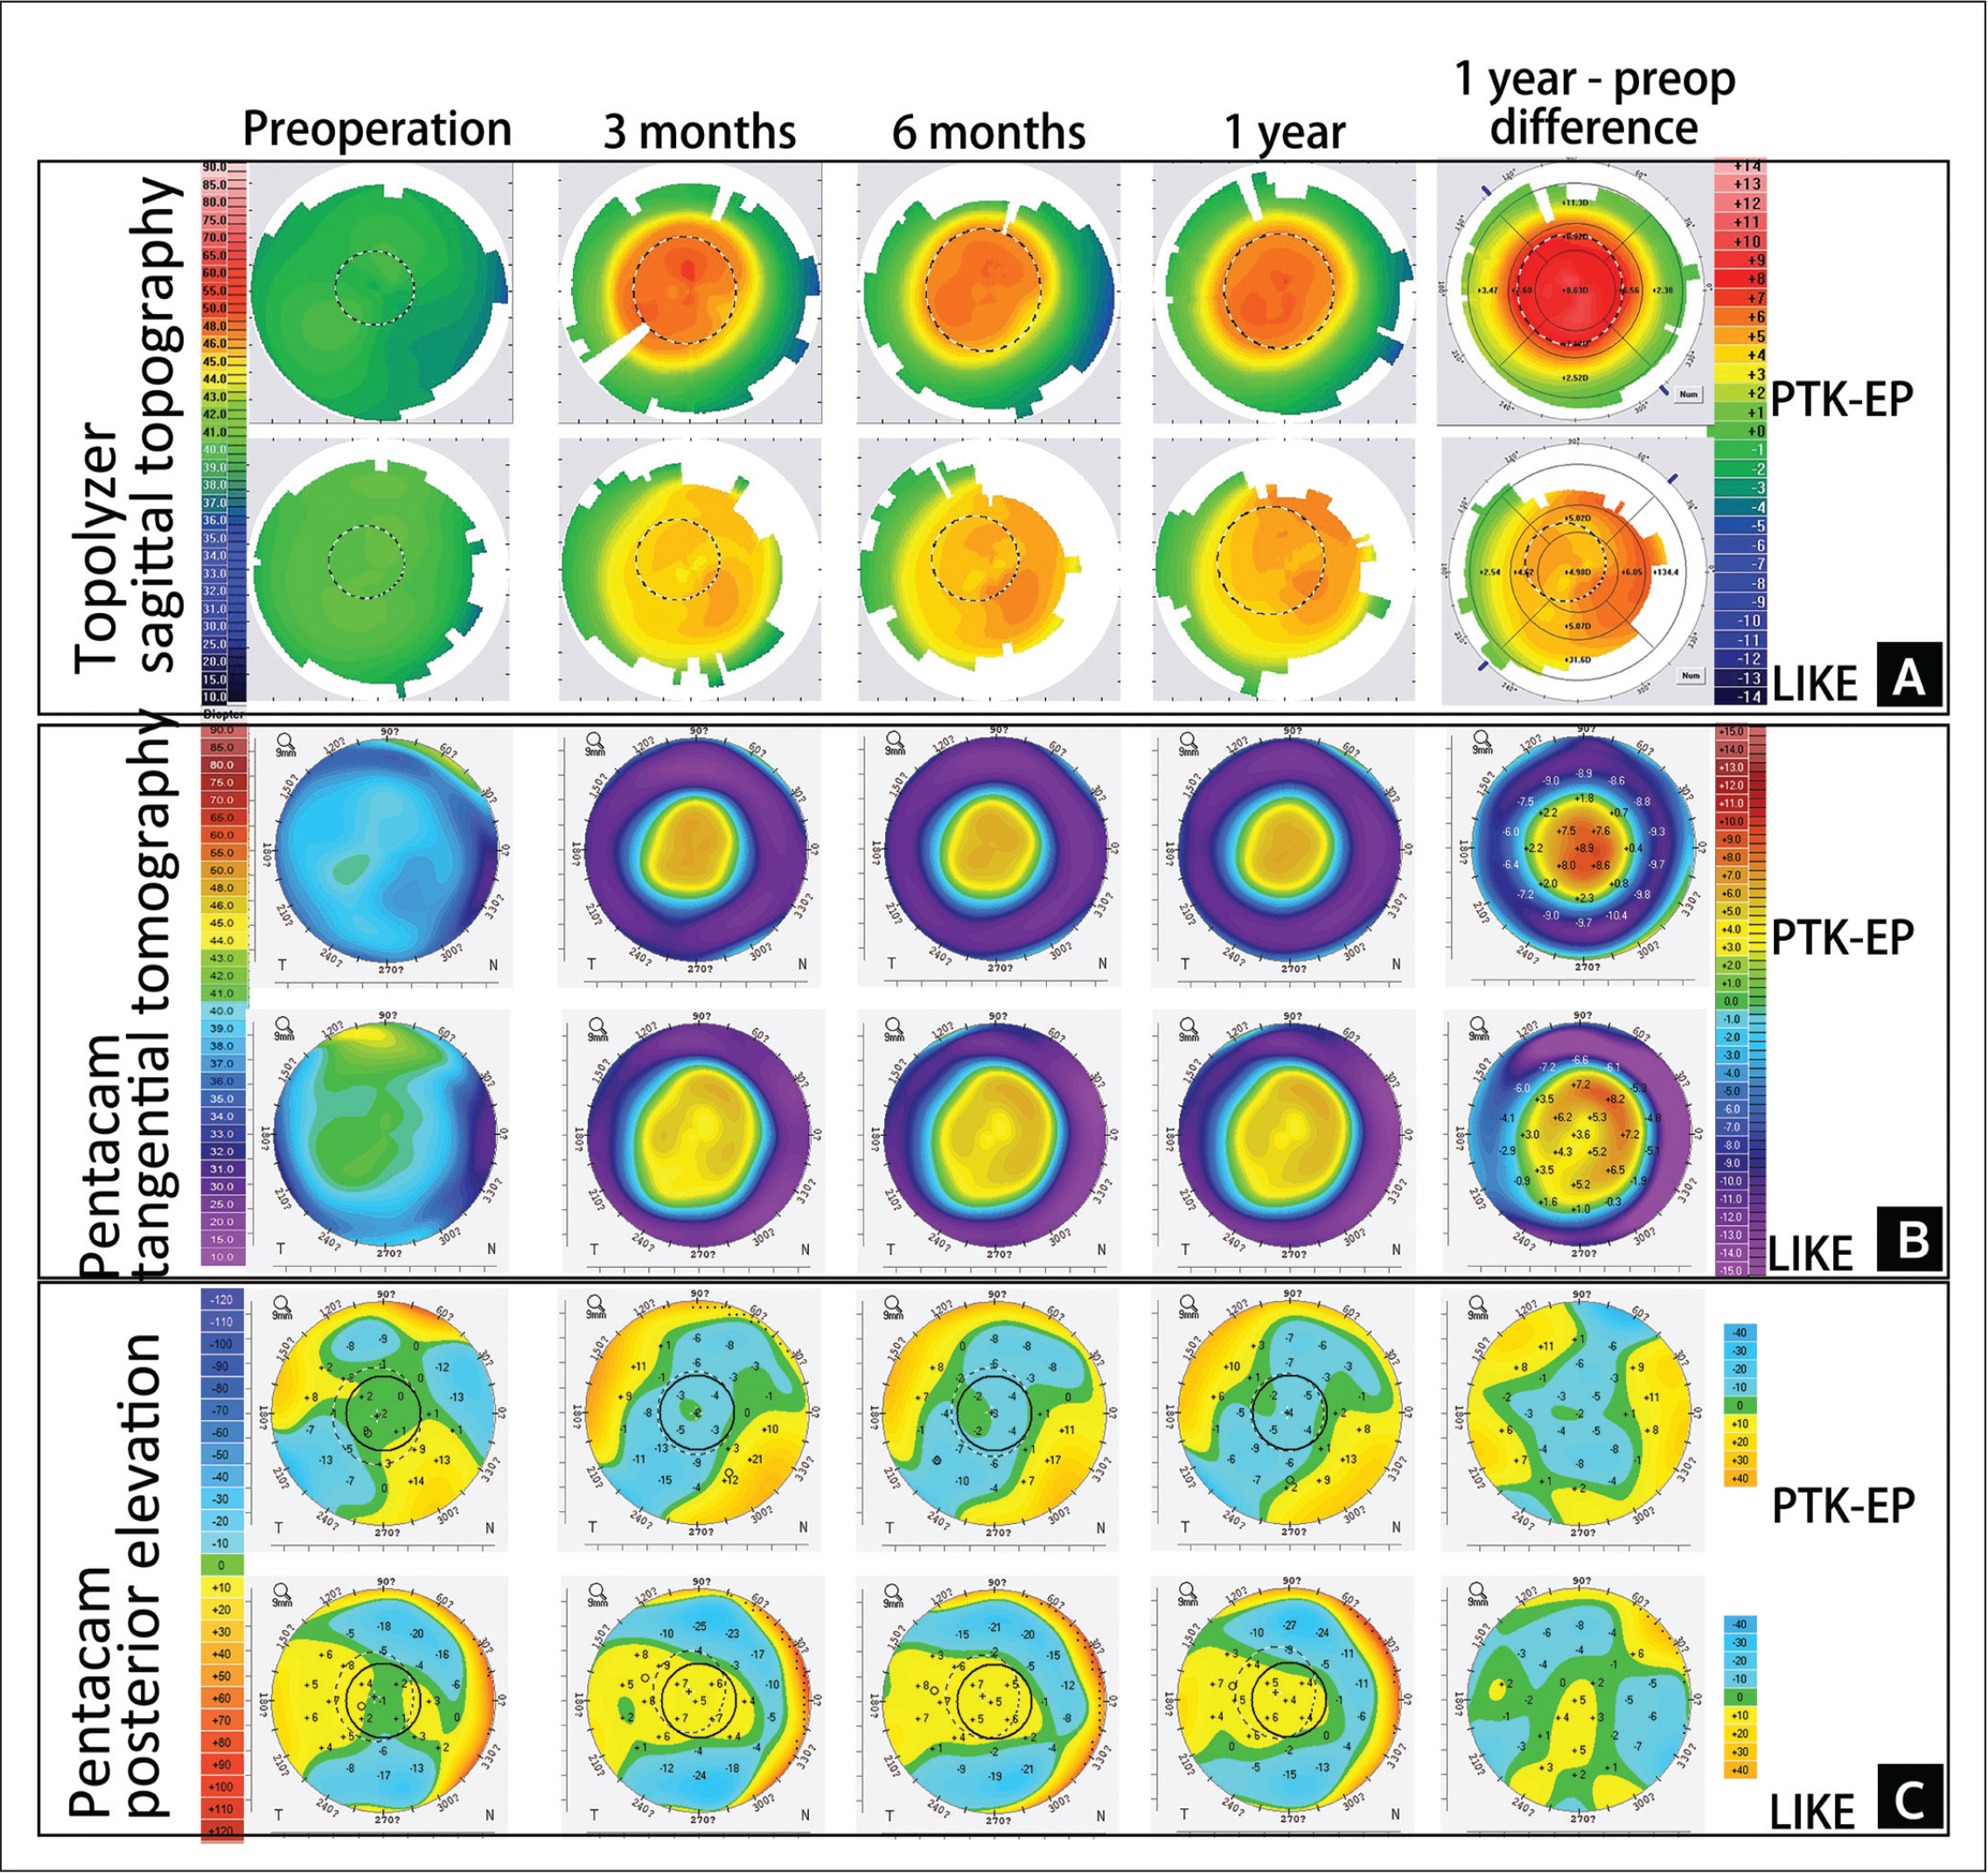 Corneal topography maps with transepithelial phototherapeutic keratectomy (PTK-EP) of eye 3 and femtosecond laser–assisted lenticule intrastromal keratoplasty (LIKE) of eye 5 over the follow-up period. (A) Anterior corneal surface topography shows axial curvature from the Alcon WaveLight Topolyzer (Alcon Laboratories, Inc) over time. (B) Anterior corneal surface tomography shows tangential curvature from the Pentacam (Oculus Optikgeräte) over time. (C) Posterior corneal surface elevation from the Pentacam over time. Figure BA shows that the irregularity of the anterior corneal surface gradually becomes regular within 1 year in both groups. Figure BB shows that there is no significant change in the morphology and diameter of the optical zone of the two procedures during the follow-up period. Figure BC shows that there is no significant change of elevation in the posterior corneal surface under the same best-fit sphere during the follow-up period. OD = right eye; OS = left eye